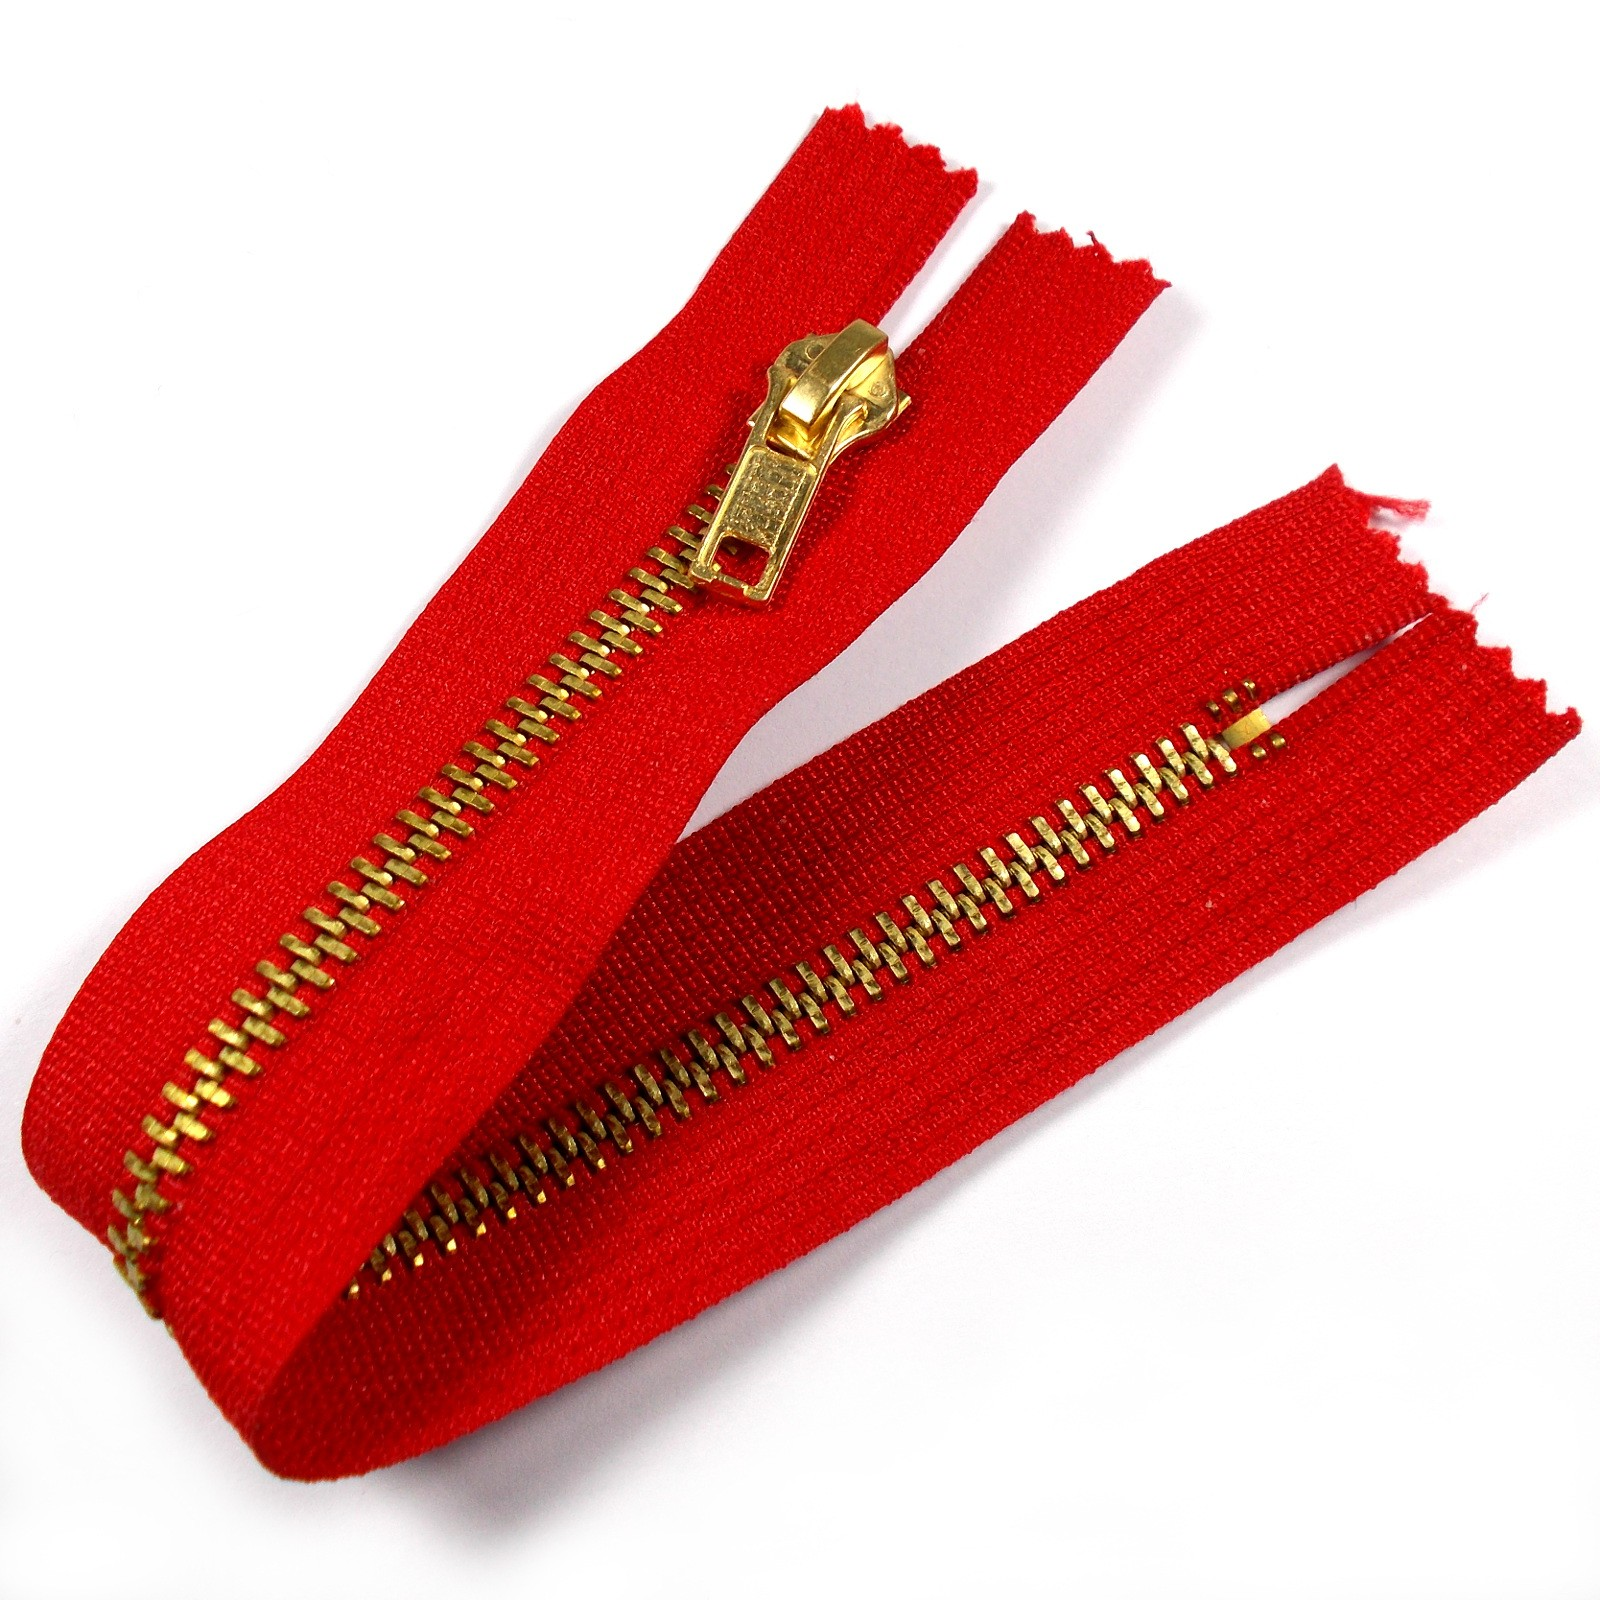 Gold Metal Trouser Jeans Zip Zipper 8 inch Red